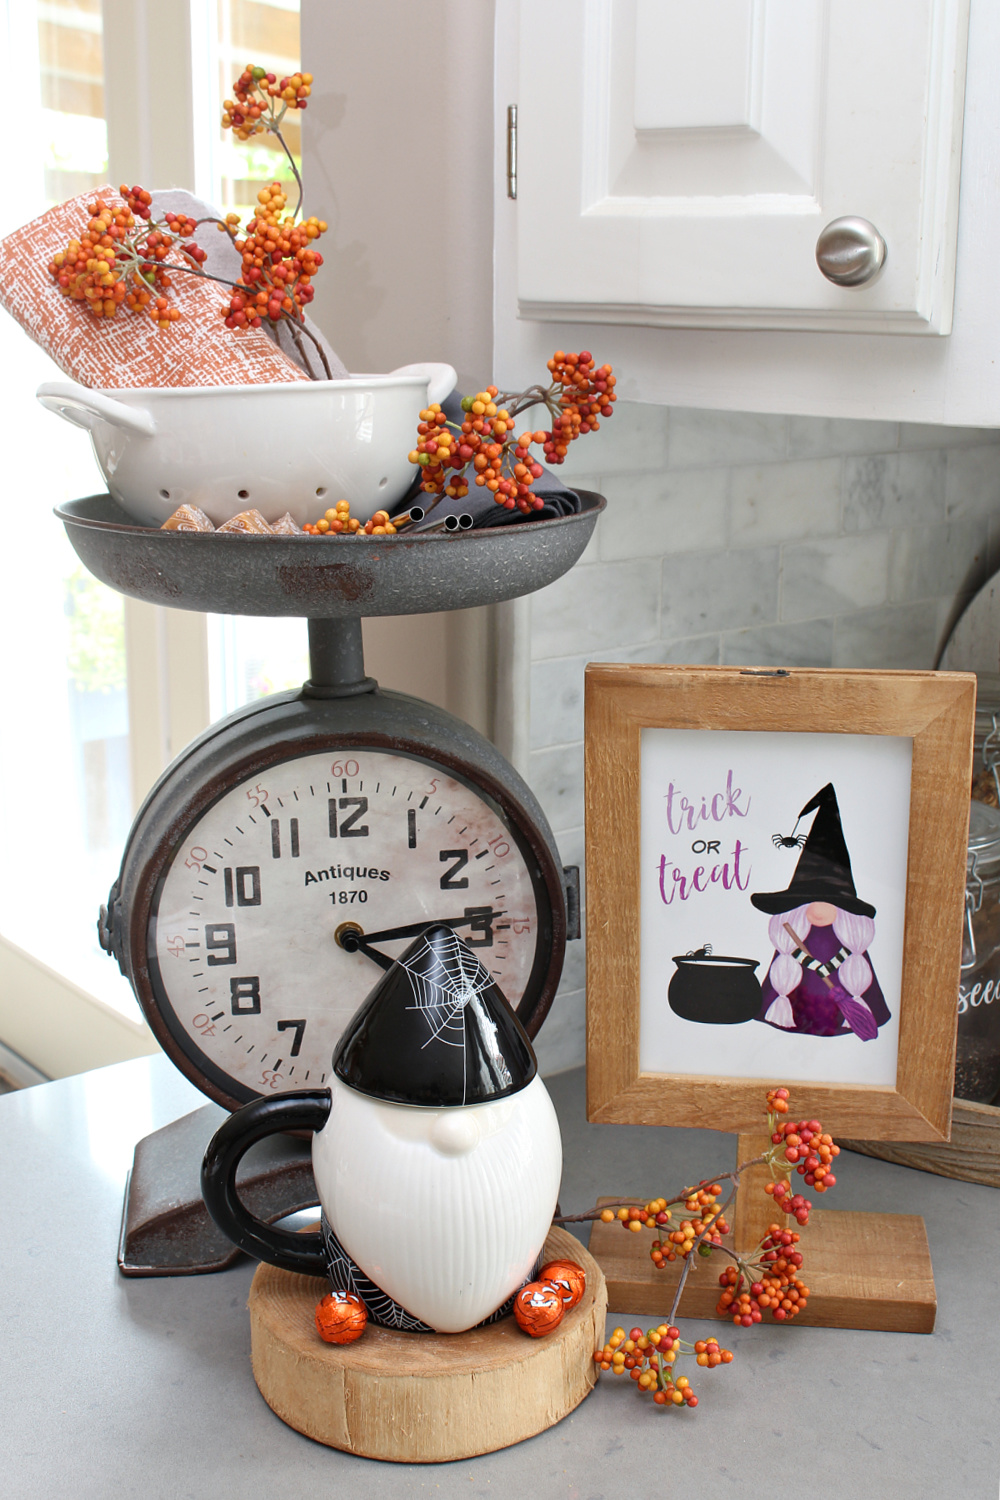 Halloween decor in a kitchen with gnome mugs and a free Halloween gnome printable.